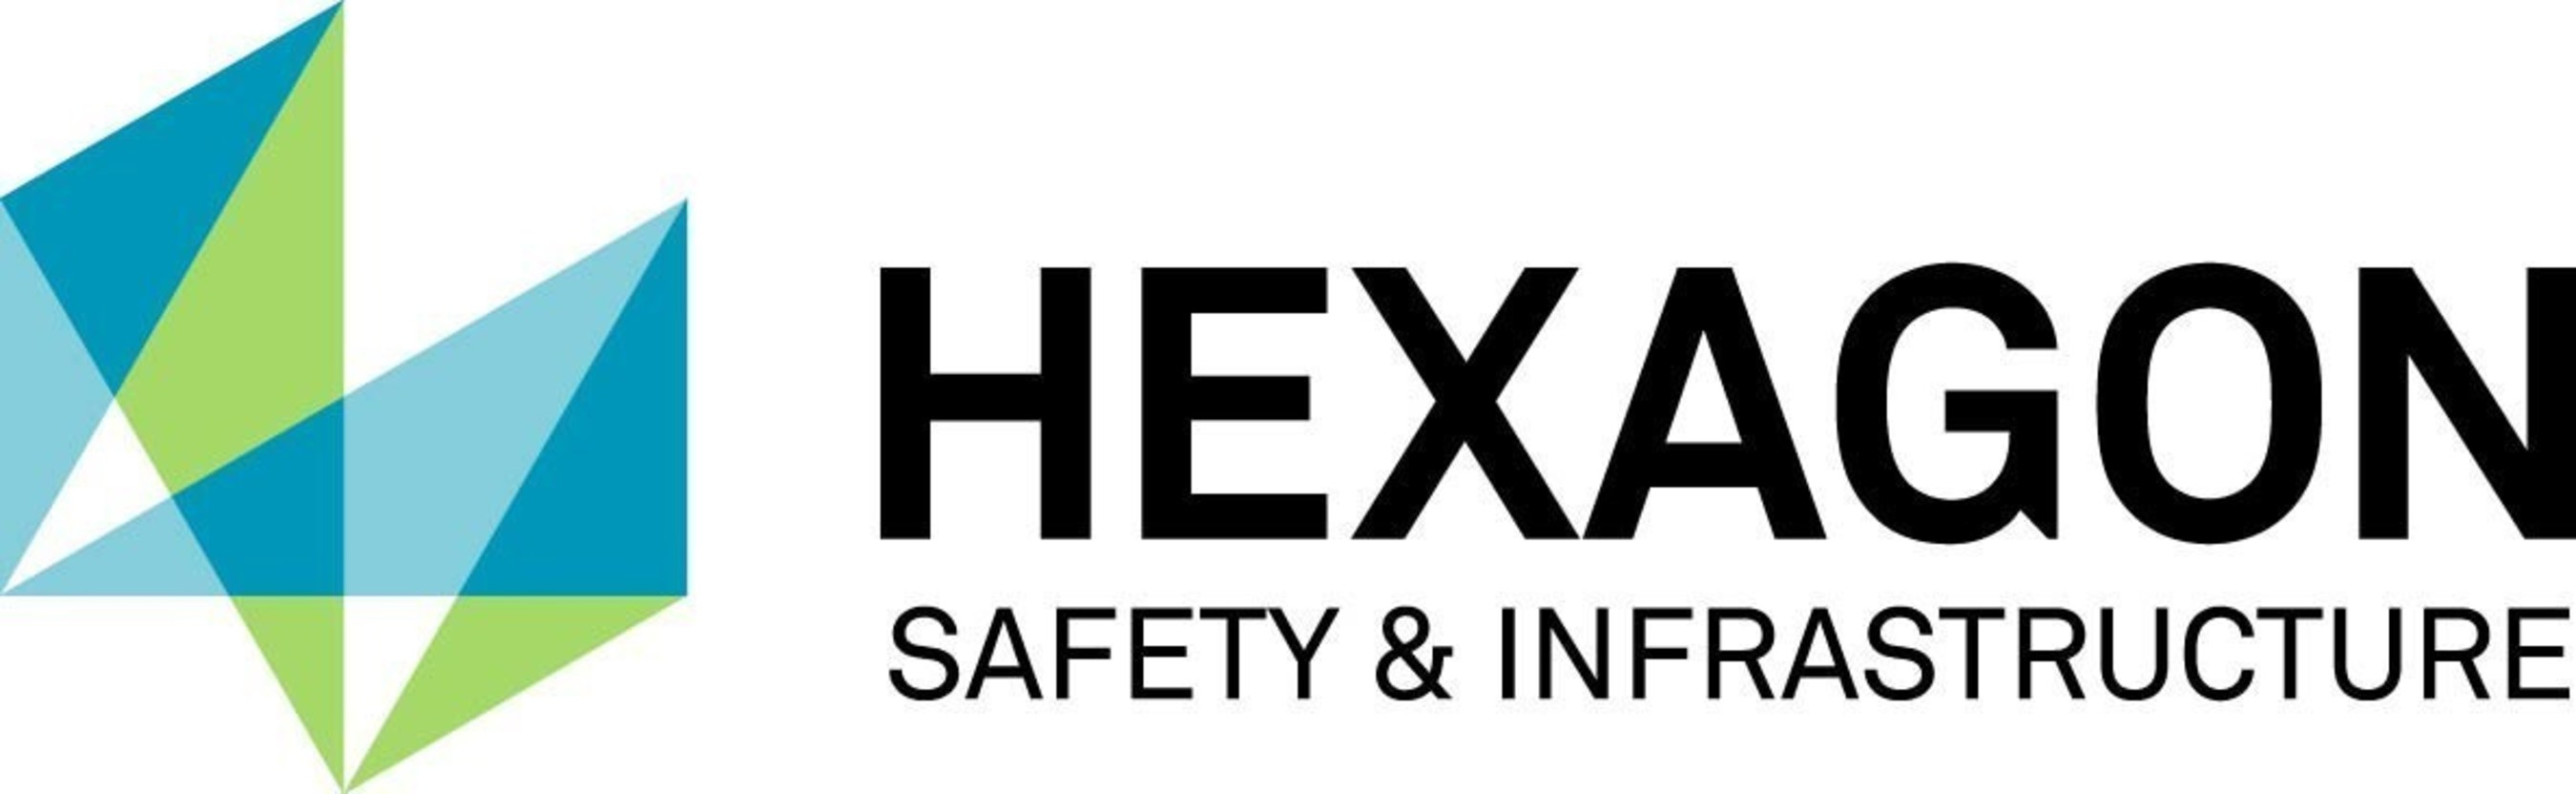 Hexagon Safety Amp Infrastructure And Black Creek Partner To